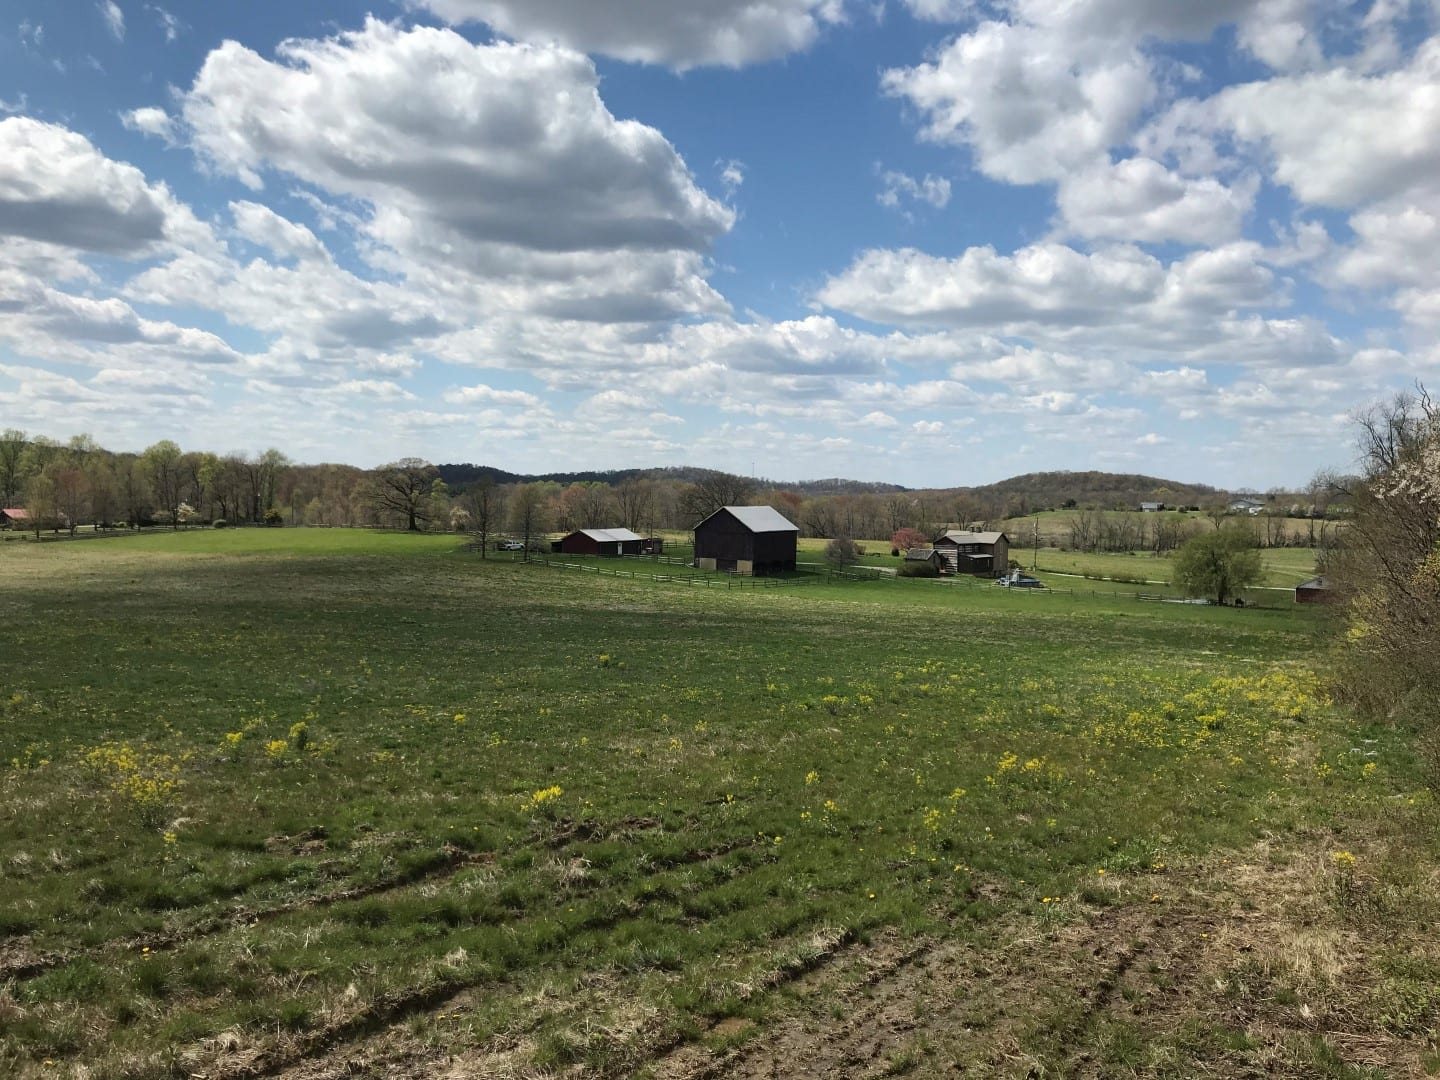 Farm available to lease in Westmoreland County